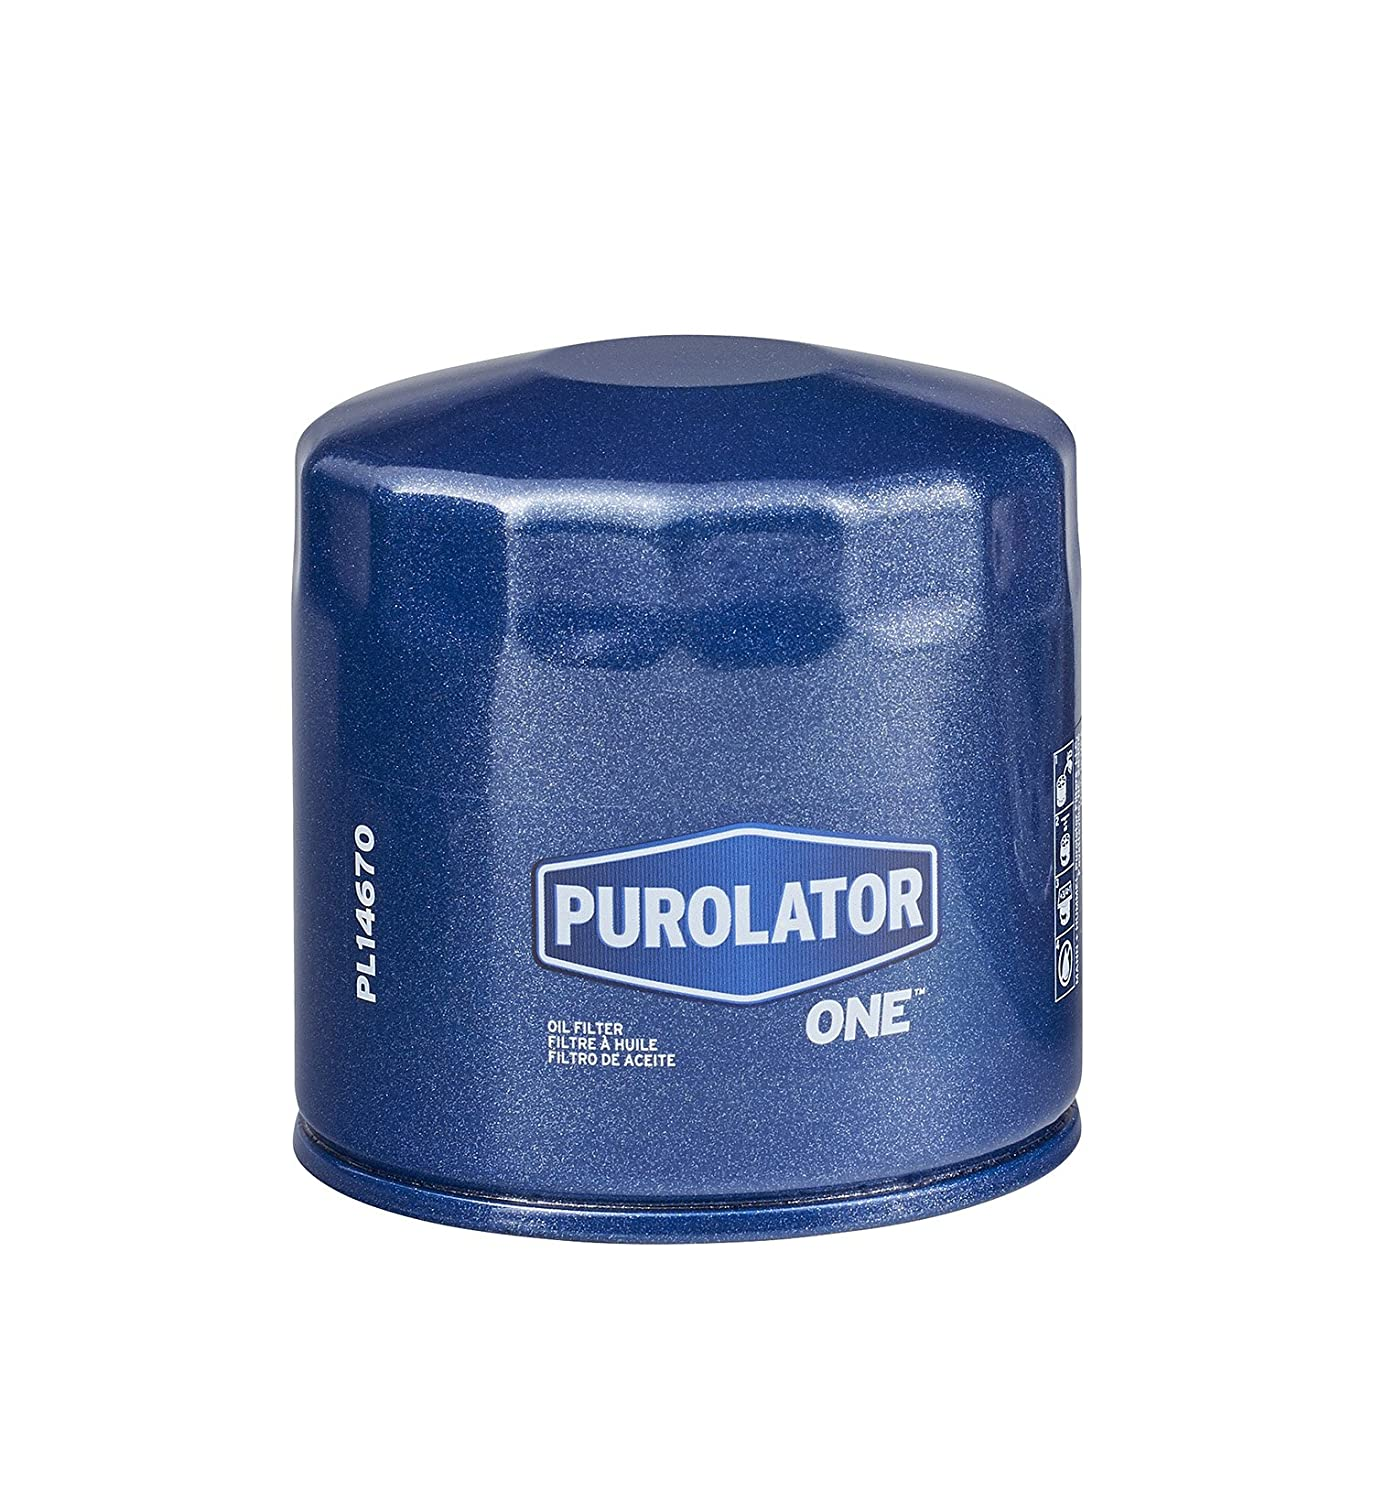 Amazon.com: Filtro de aceite PurolatorONE.: Automotive